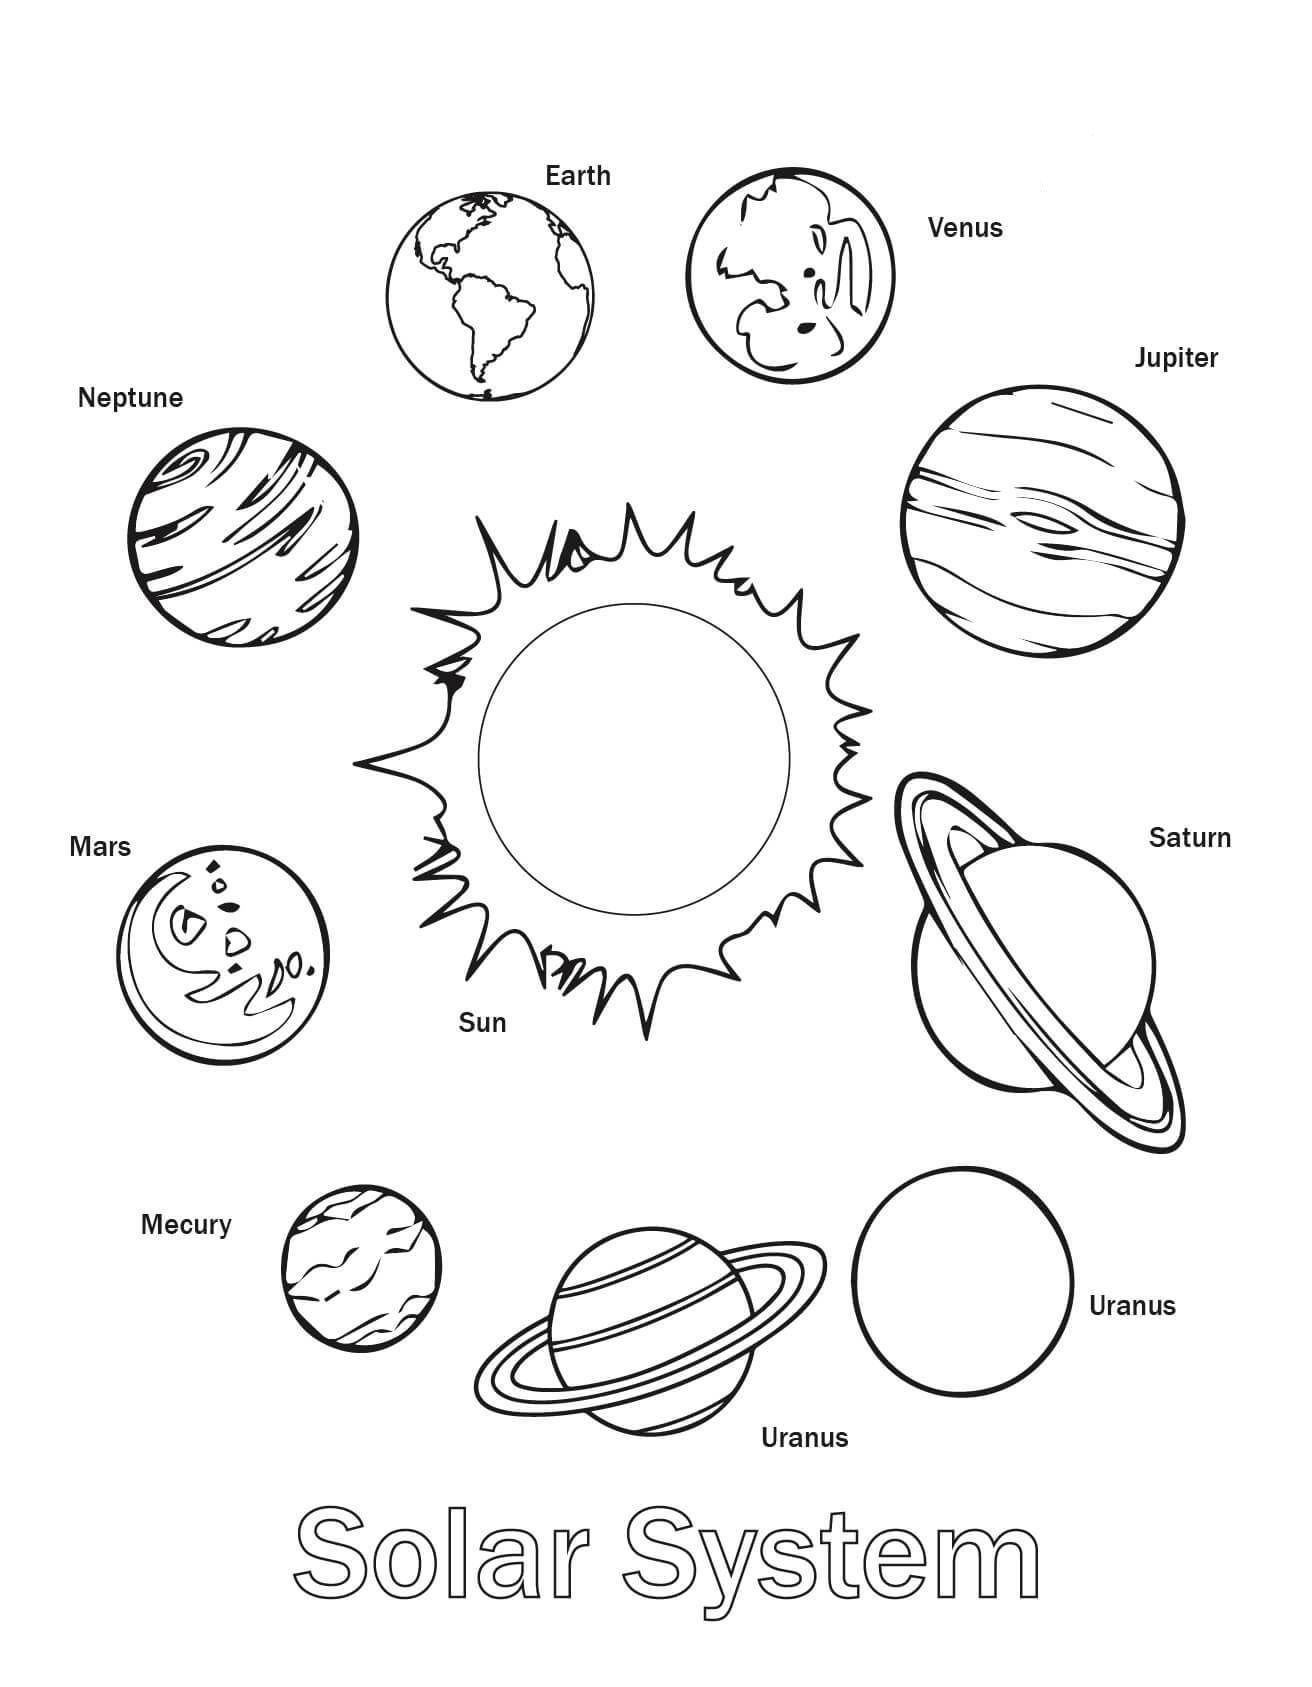 Free Printable Solar System Coloring Pages For Kids | Science | Free Printable Space Worksheets